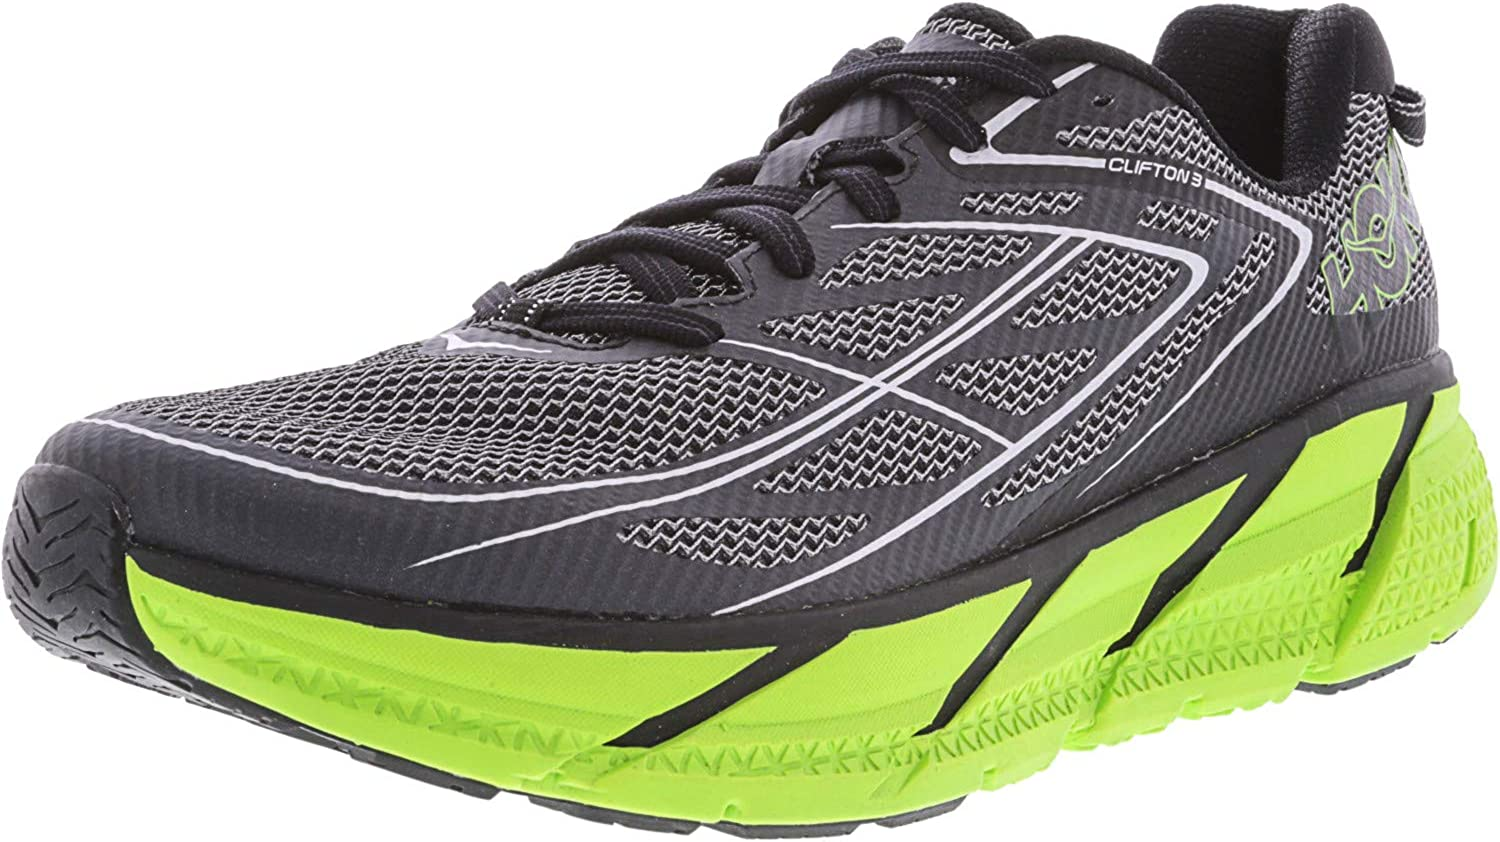 HOKA One One Clifton 3 - Zapatillas de Running para Hombre, Gris (Azul Grafito/Verde Intenso), 43 EU: Hoka One One: Amazon.es: Zapatos y complementos